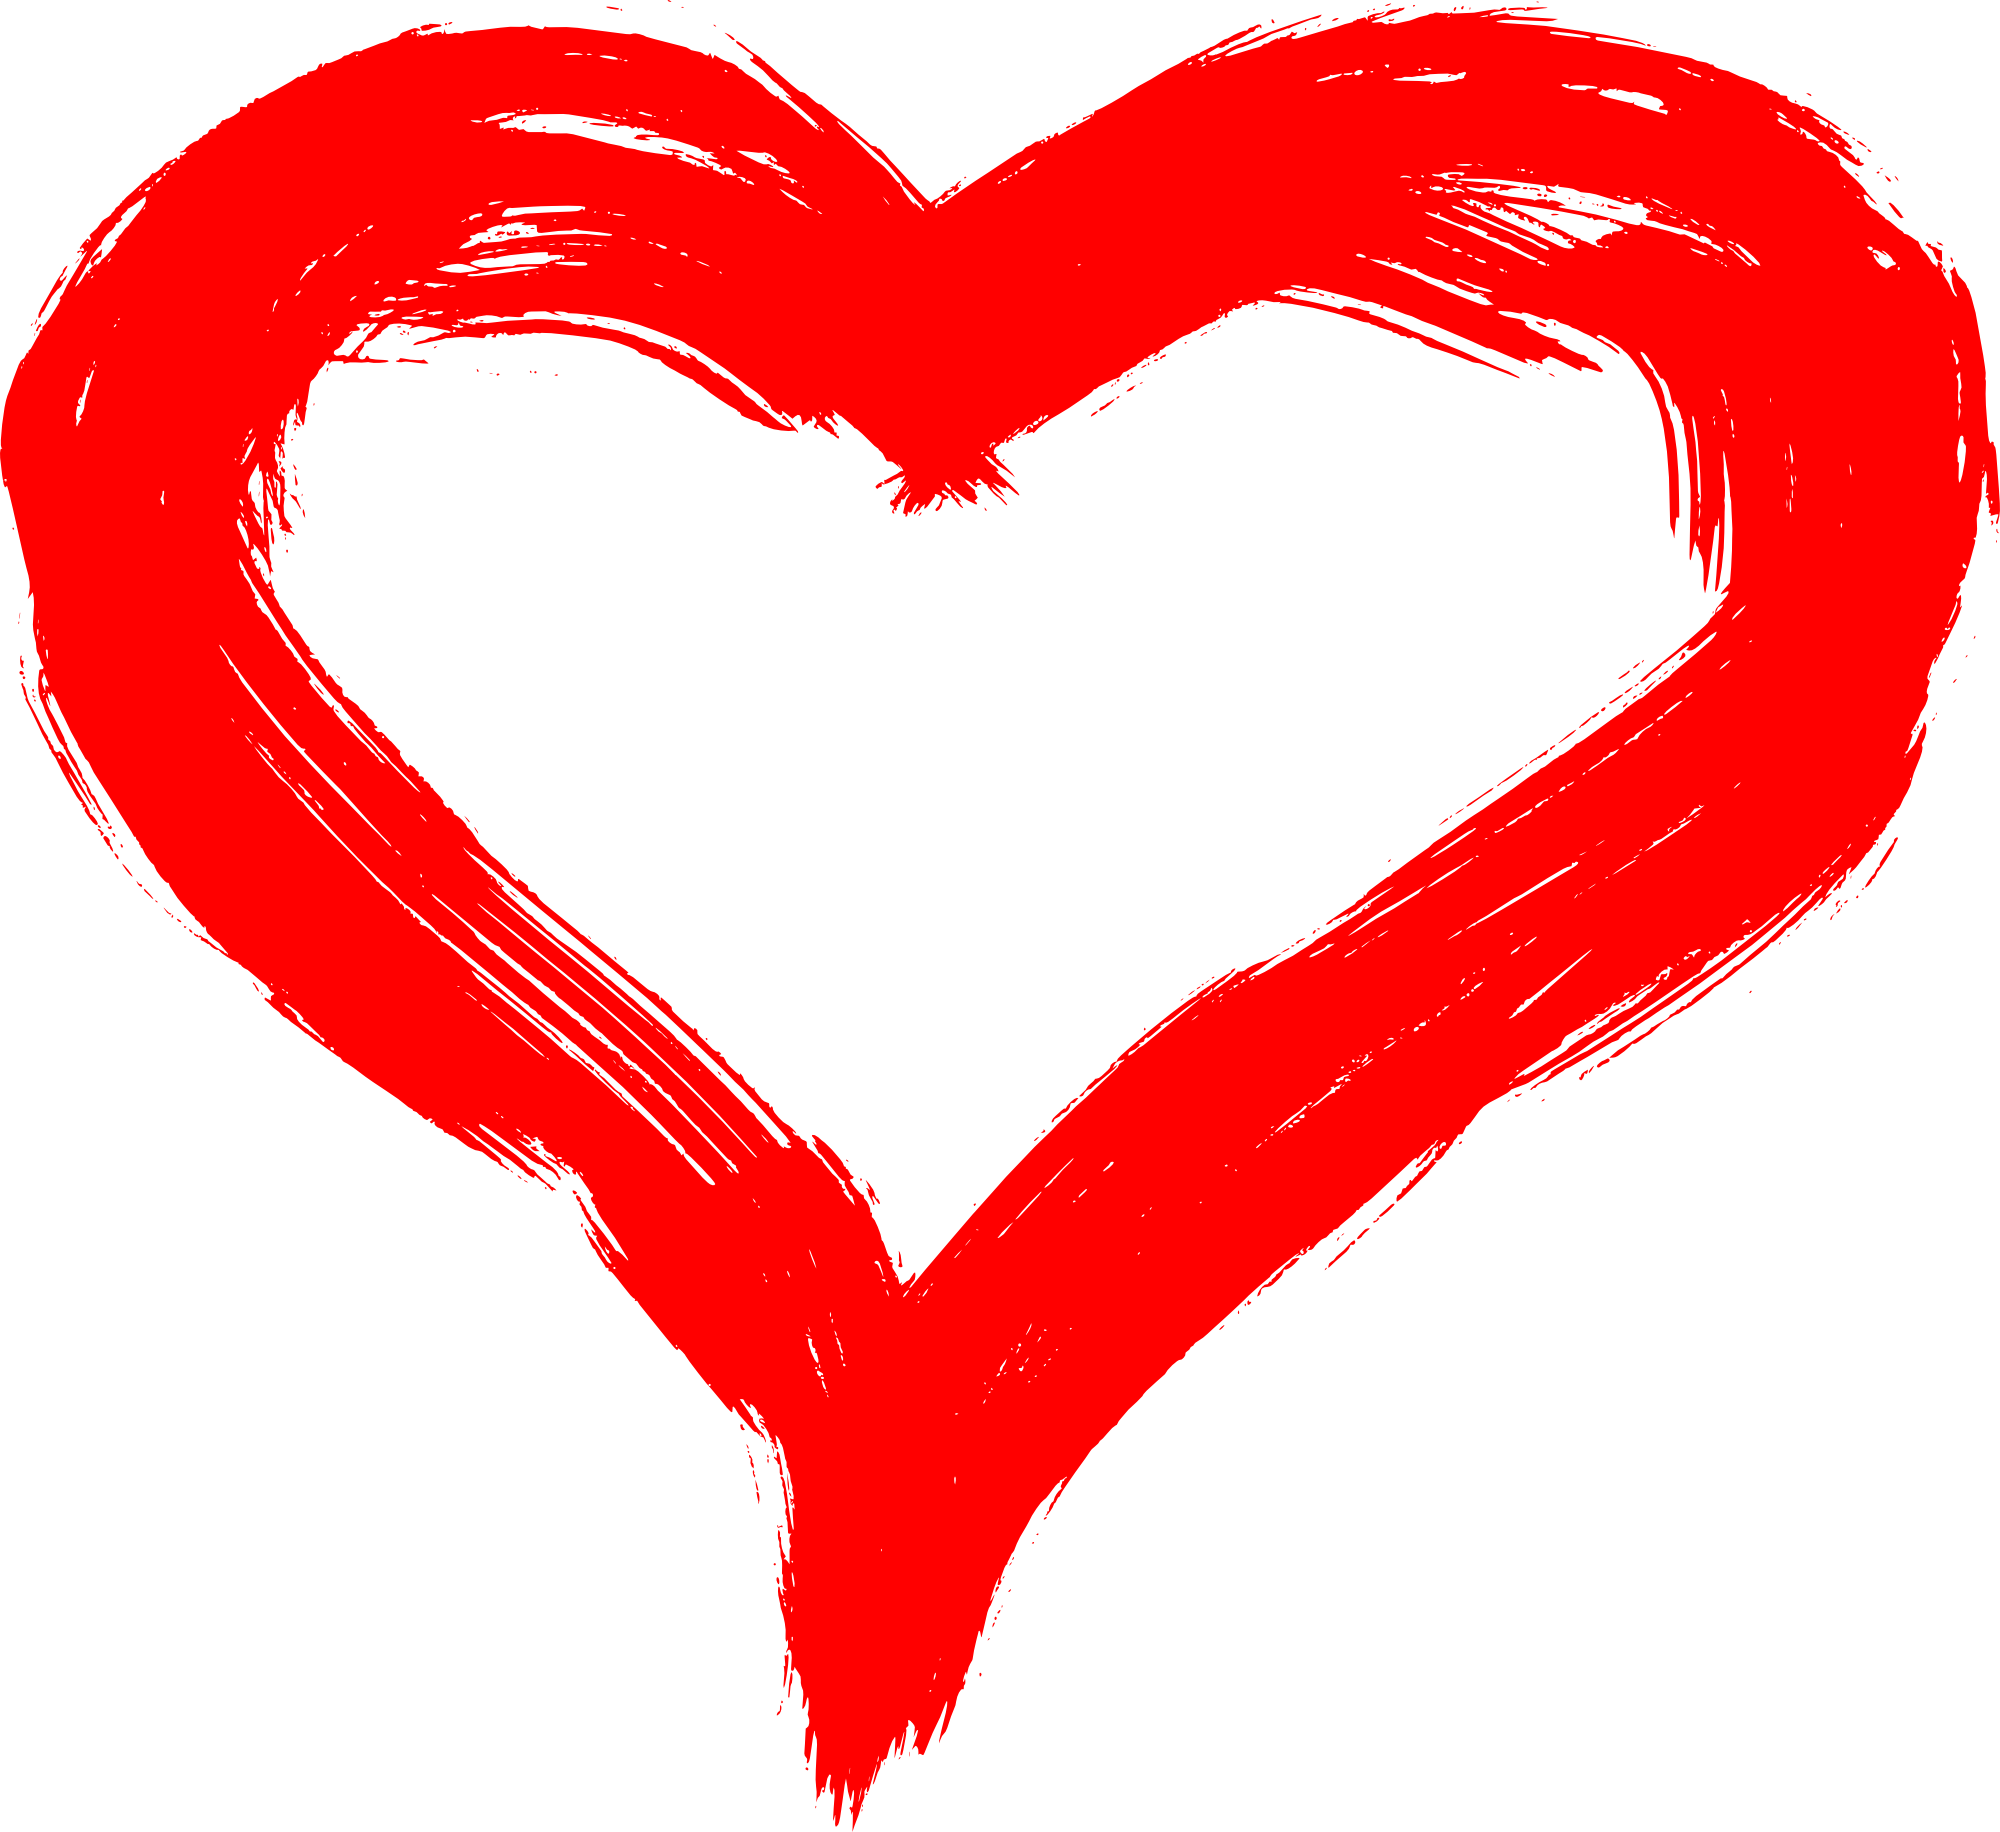 Hearts png images. Heart available in different